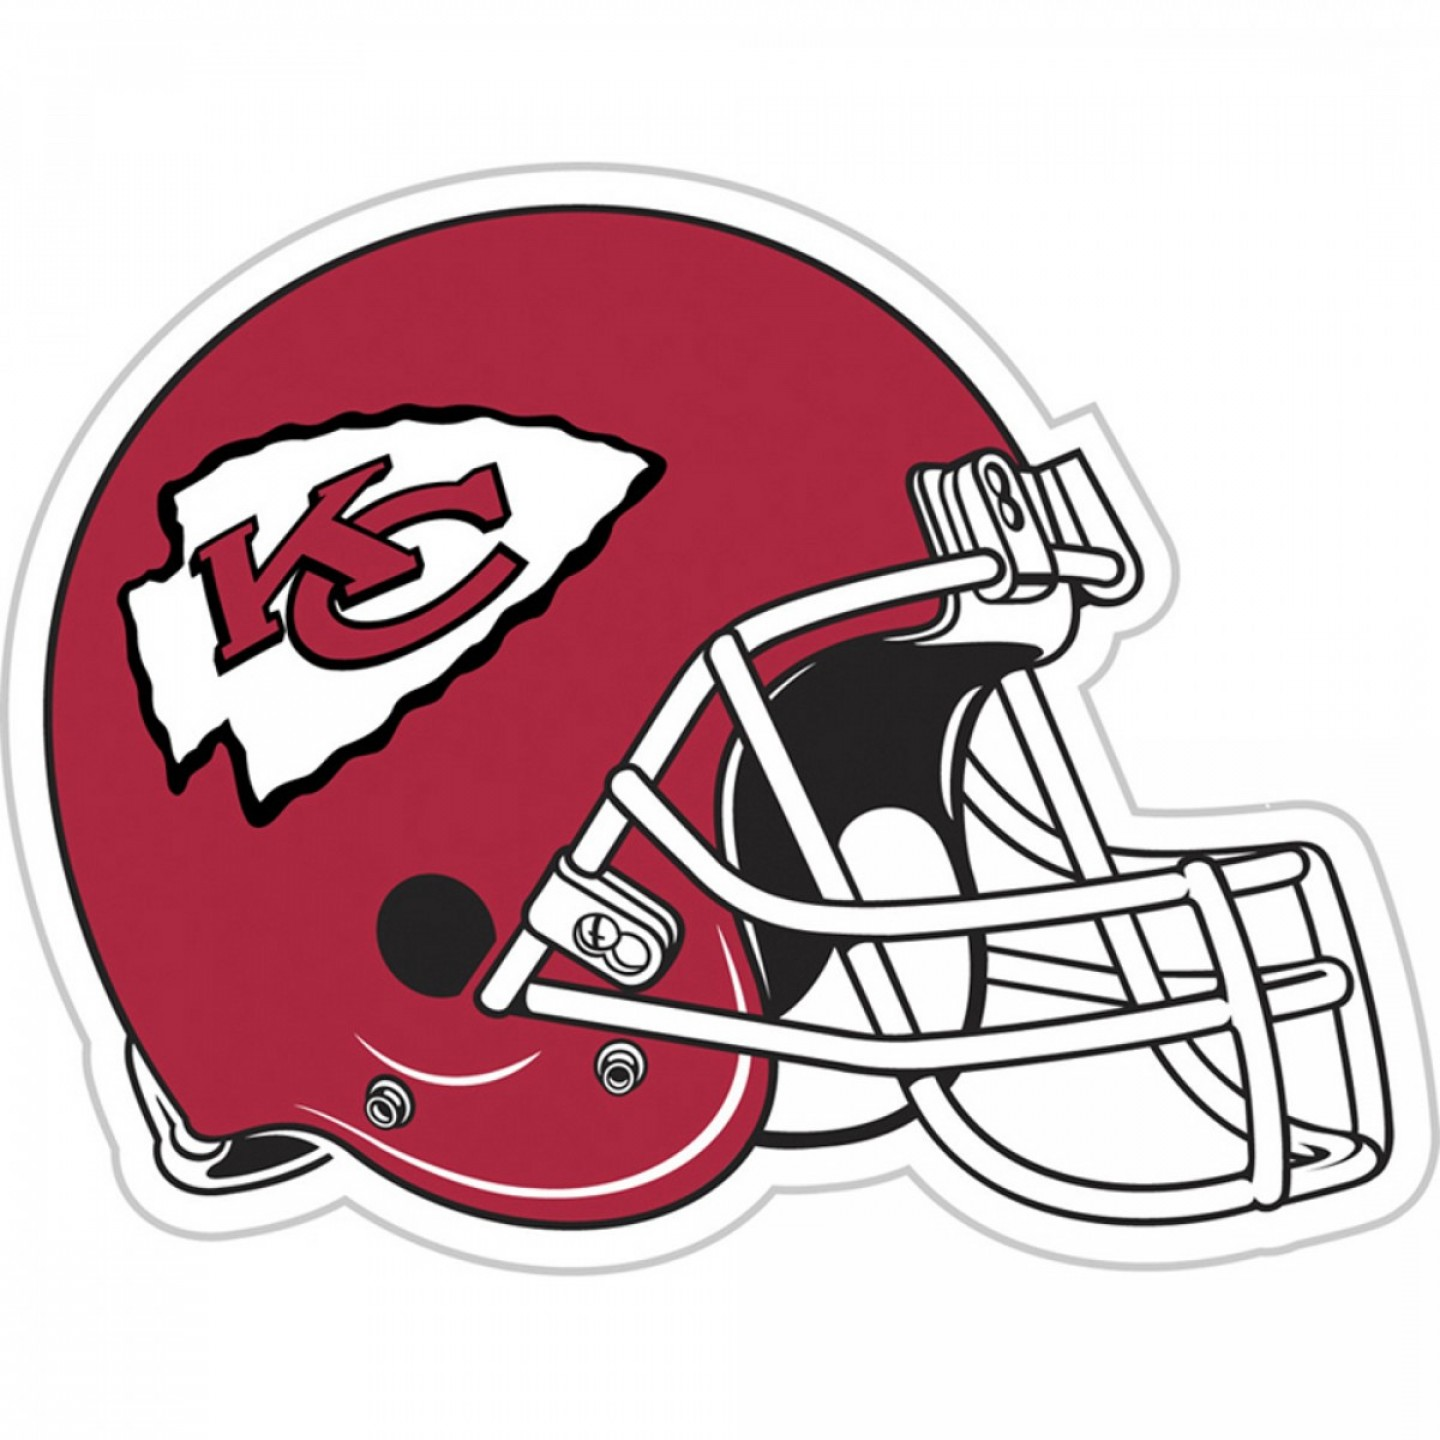 Kansas City Chiefs Logo Vector: Cute Kc Chiefs Logo Nfl Kansas City Stencil Coloring Pages